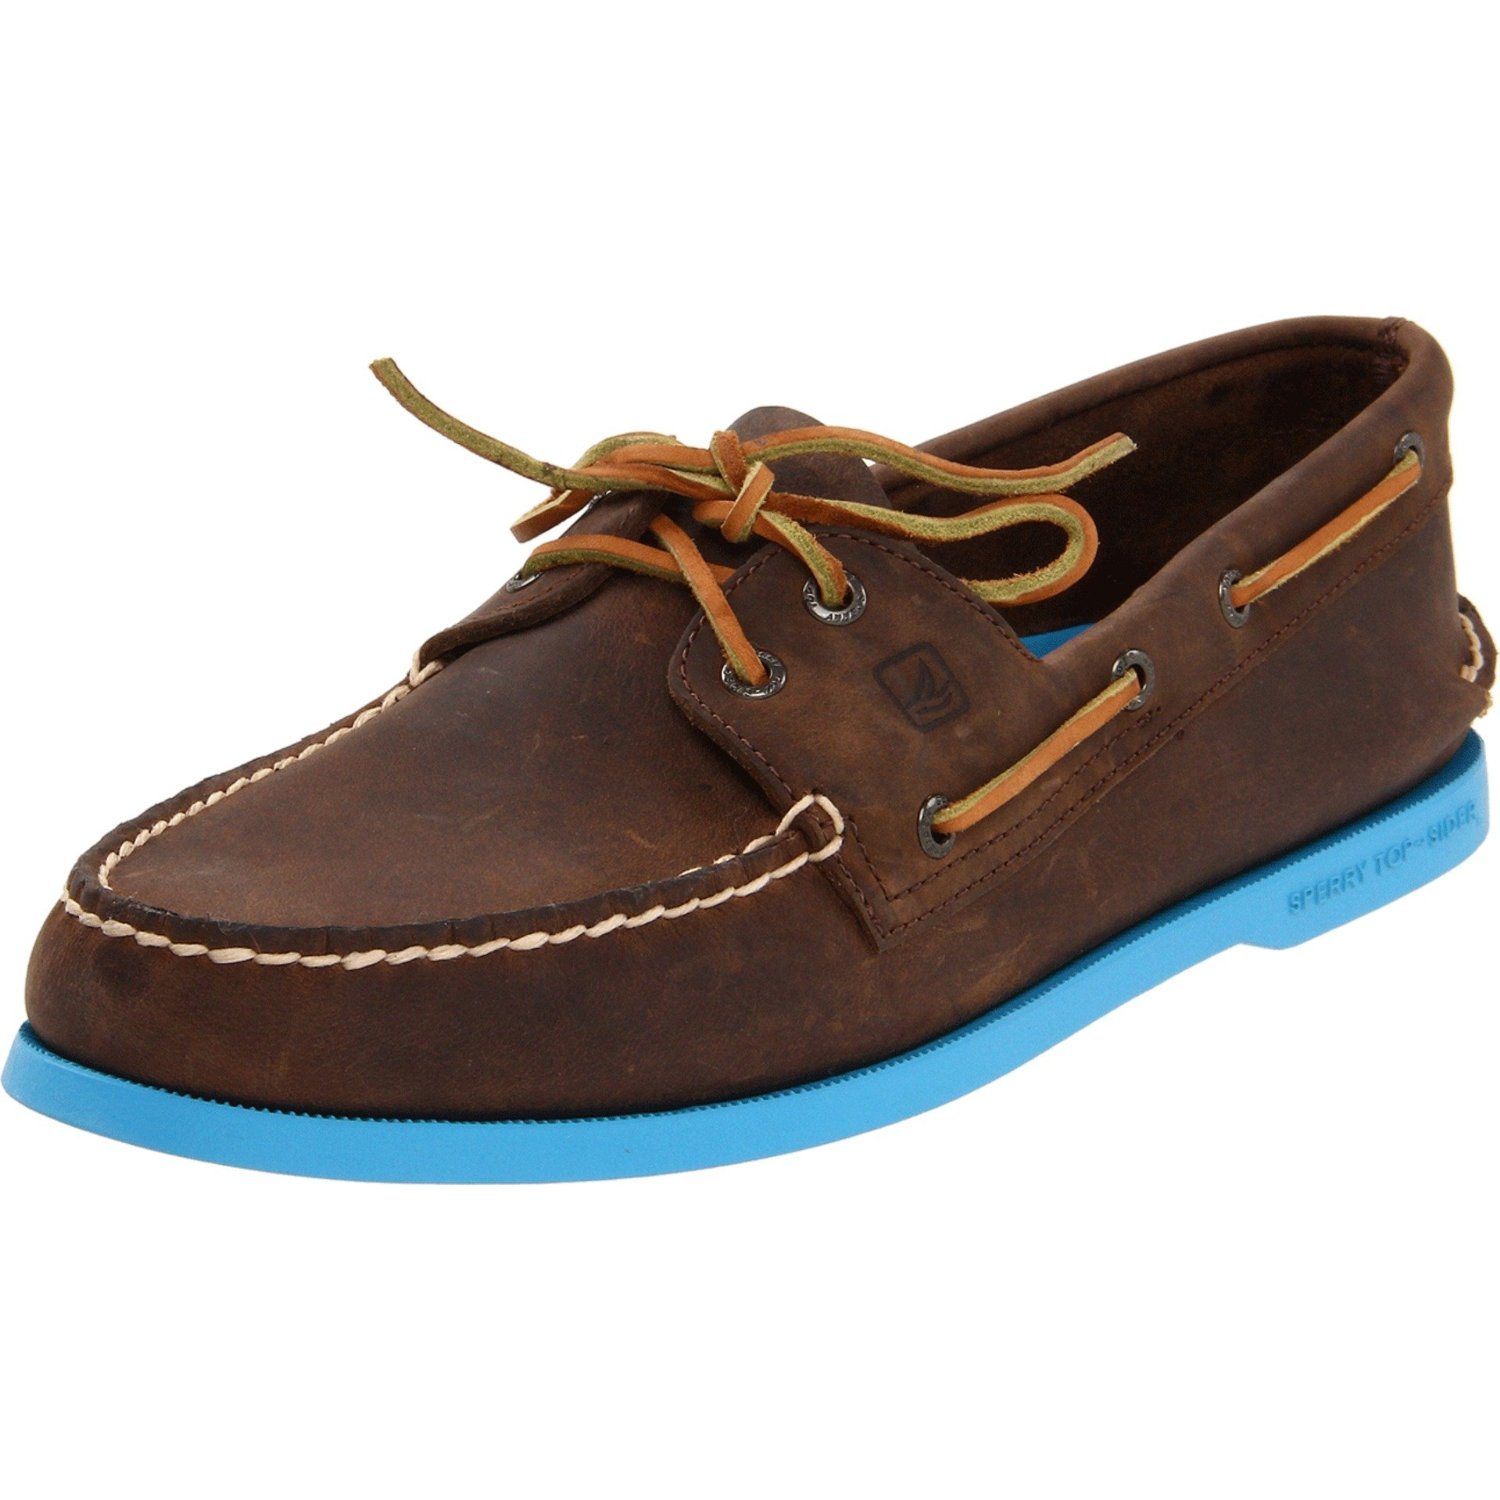 Blue Brown Boat Shoes